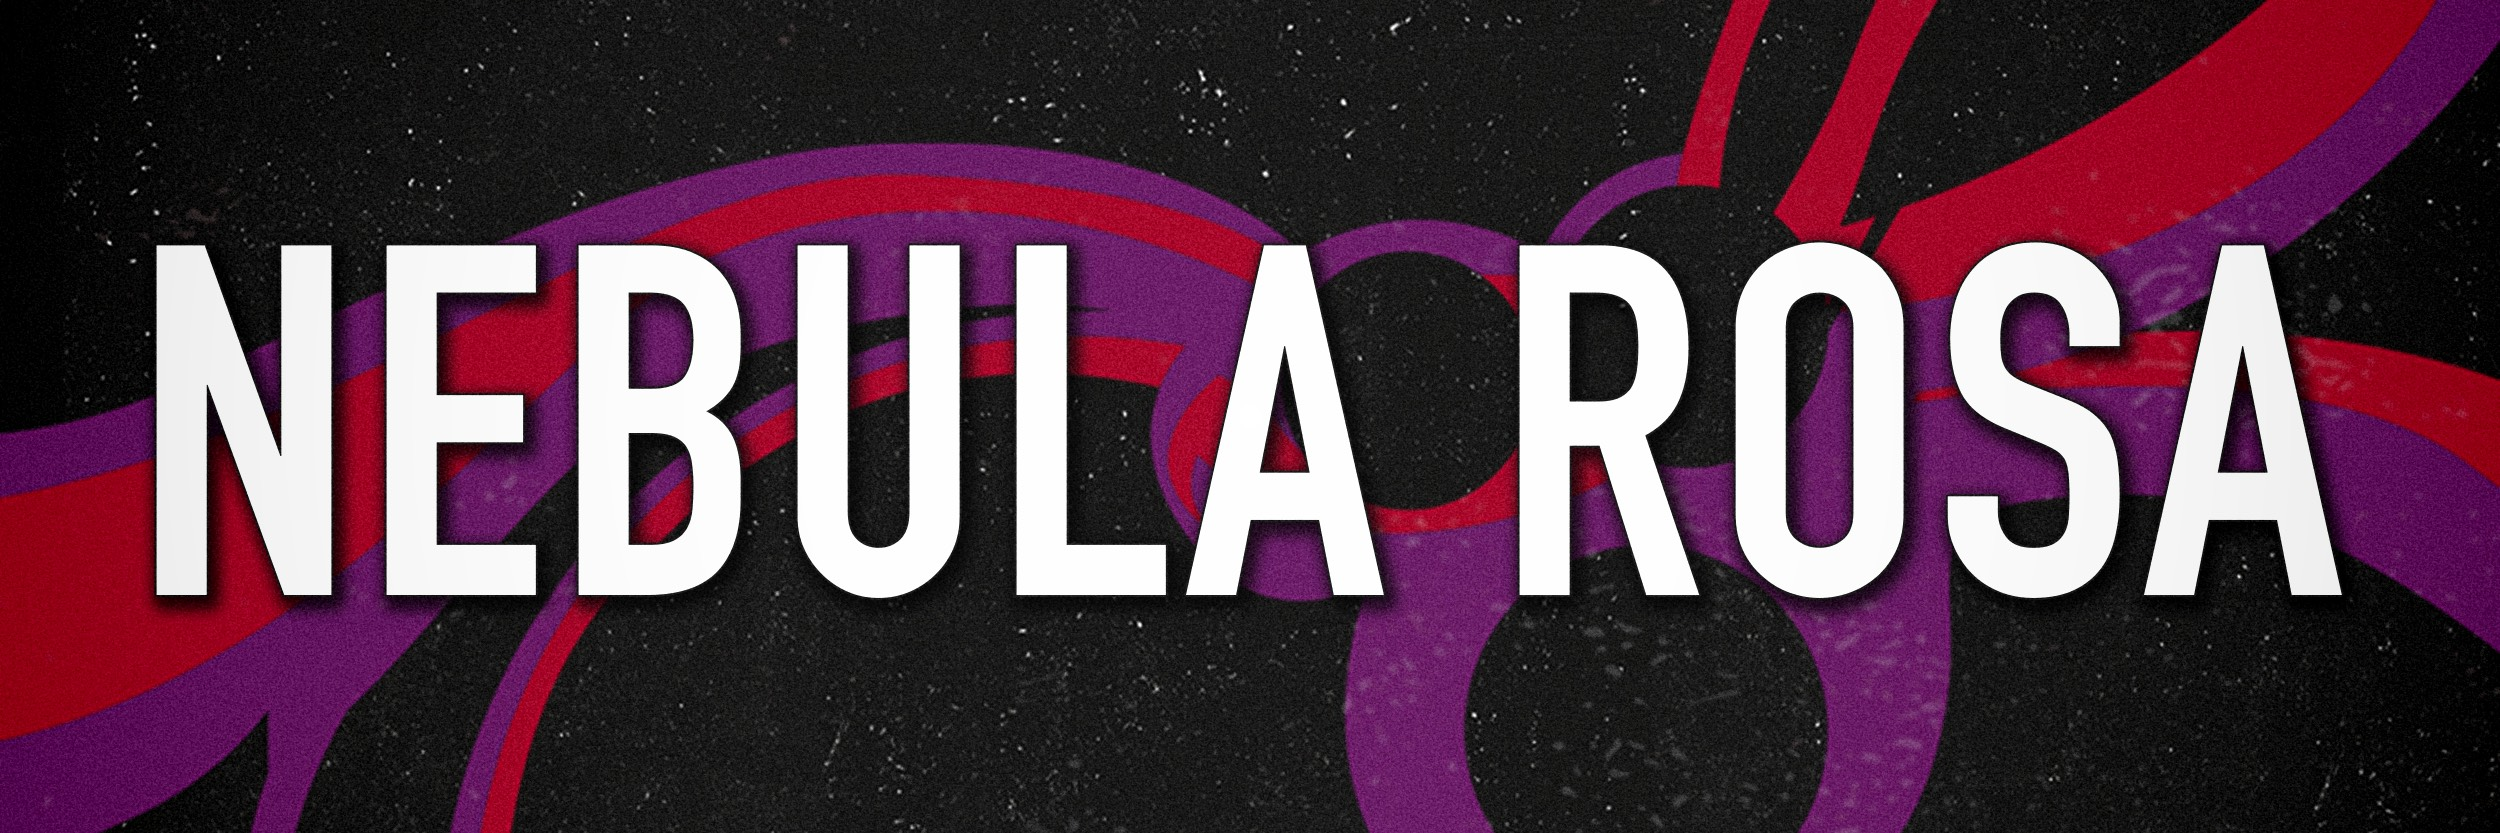 Website Header - Nebula Rosa.jpg